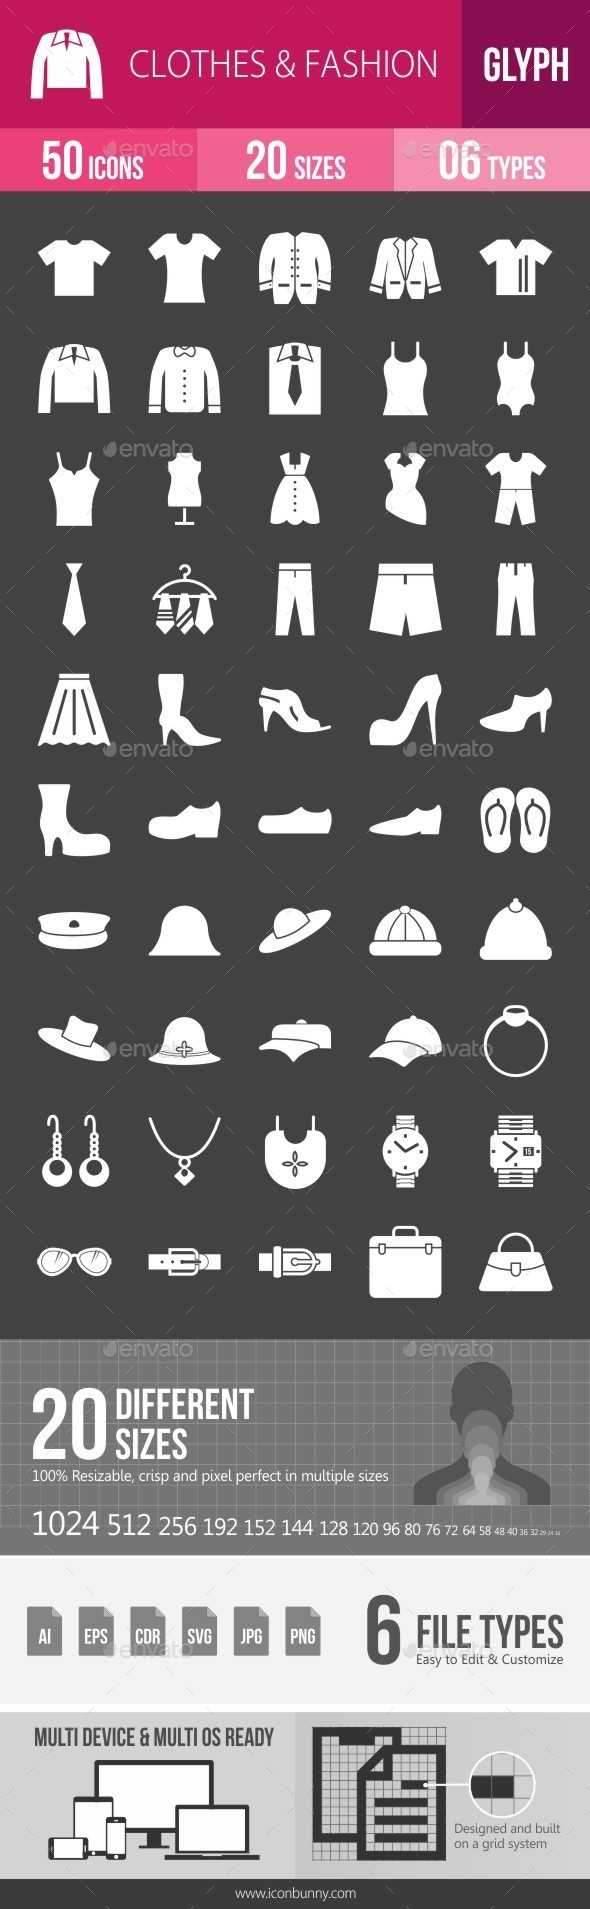 Clothes & Fashion Glyph Inverted Icons - Icons